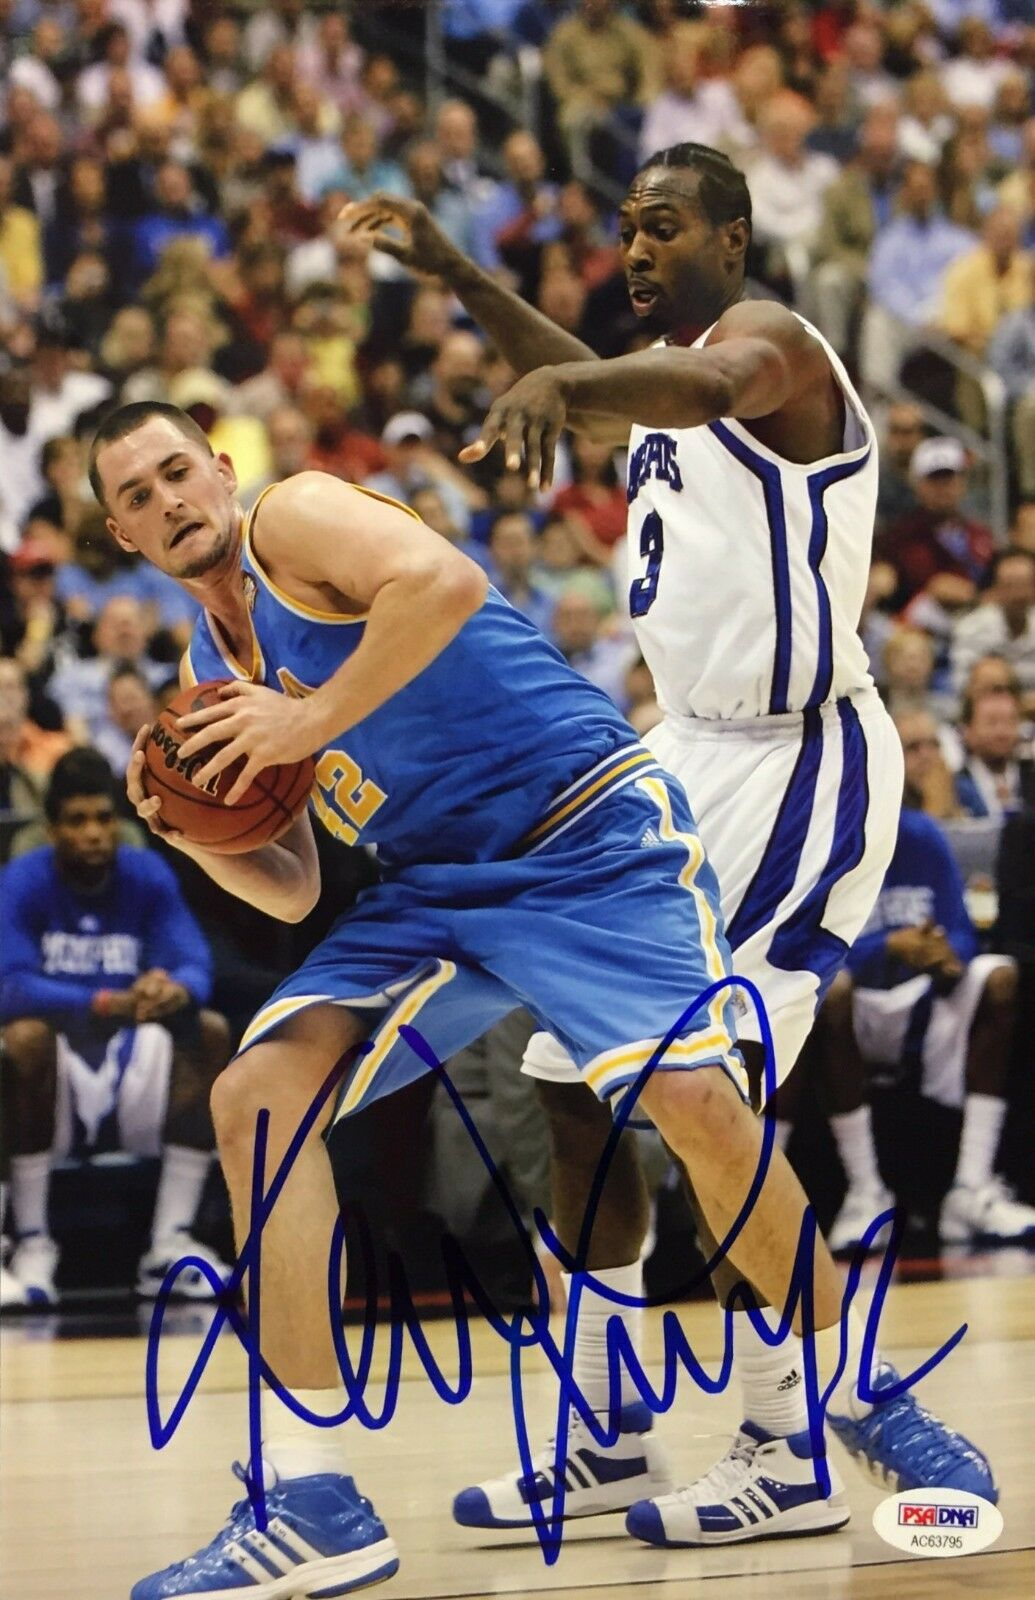 Kevin Love Signed 8x12 UCLA Basketball Photo PSA AC63795